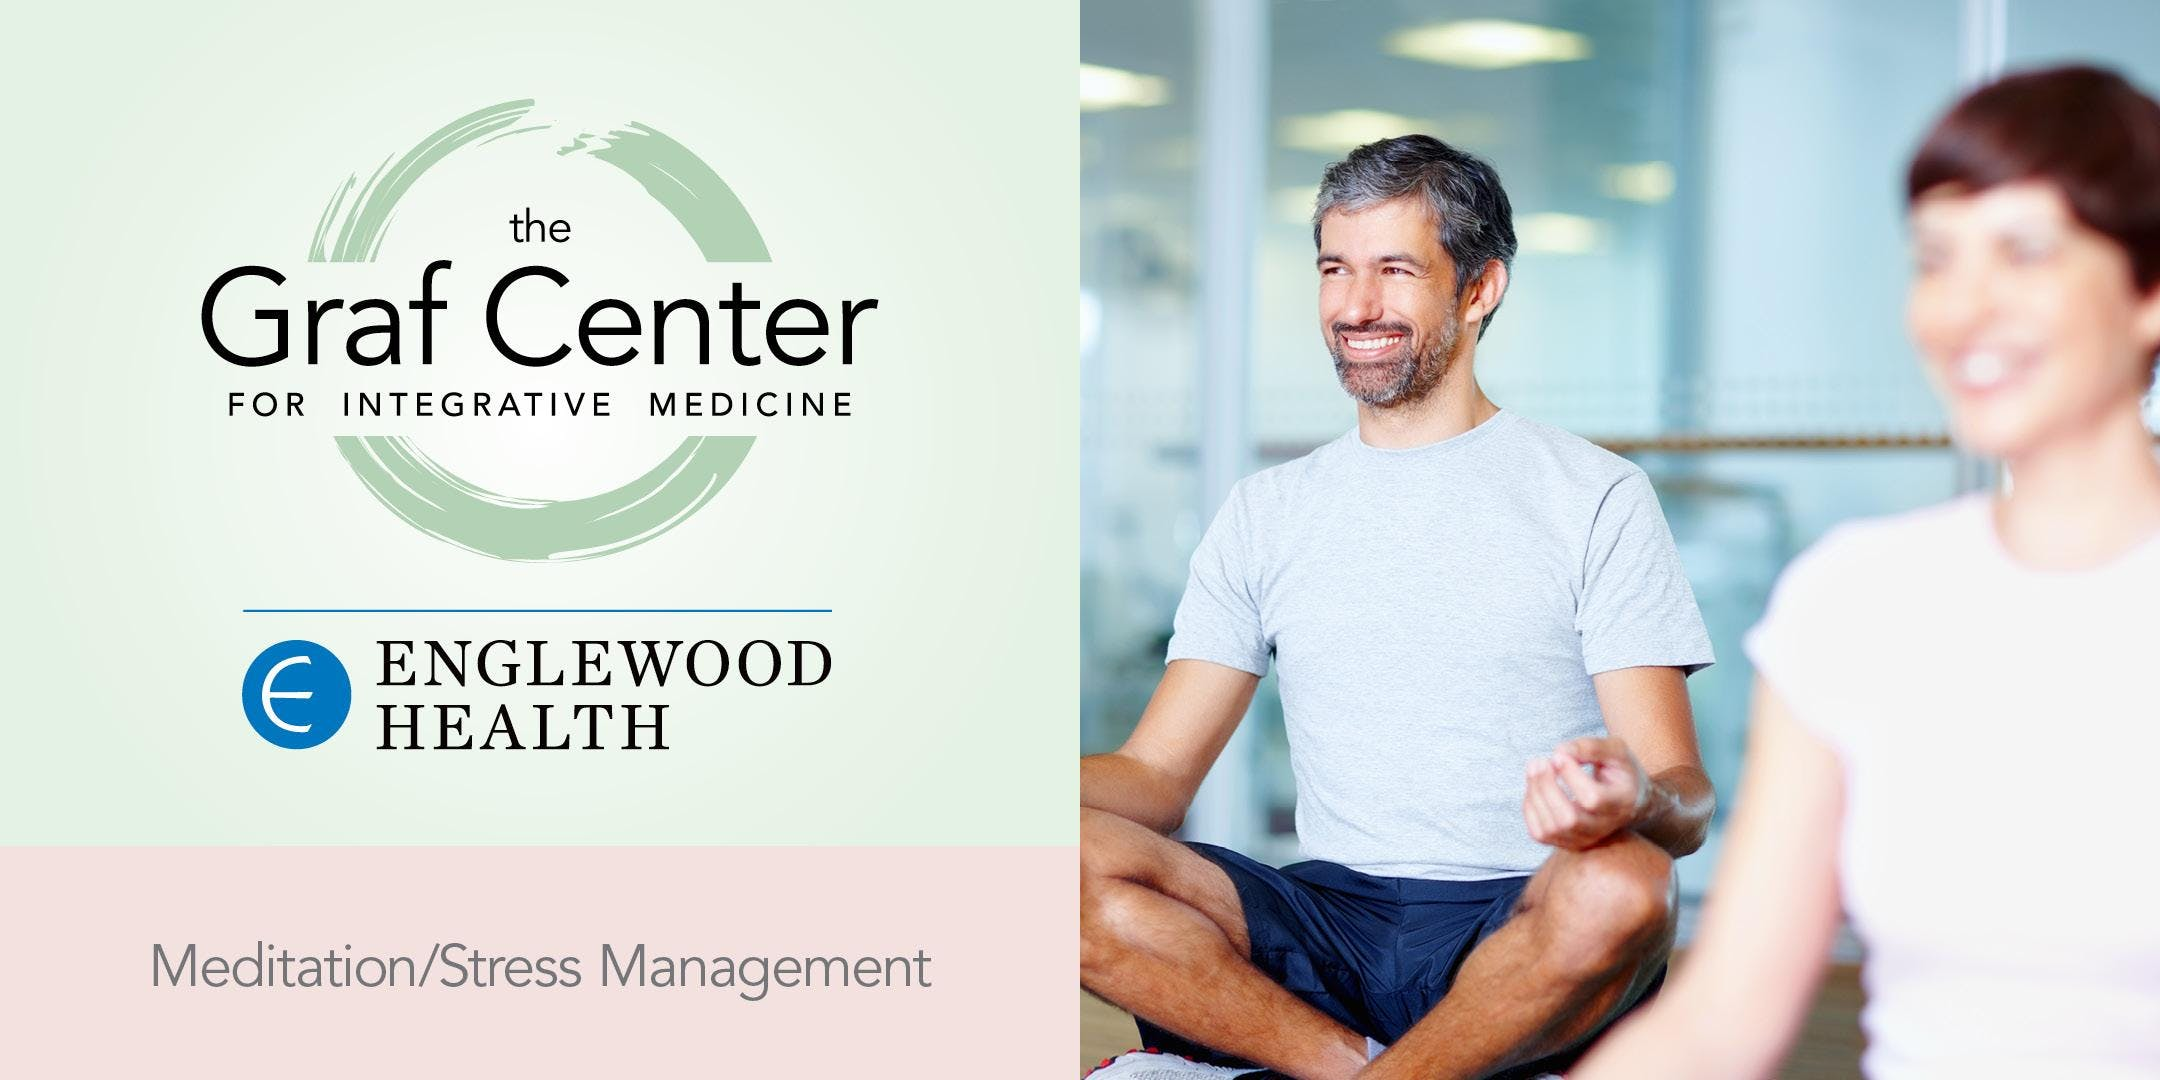 More info: Meditation and Gentle Yoga for Stress and Pain Management